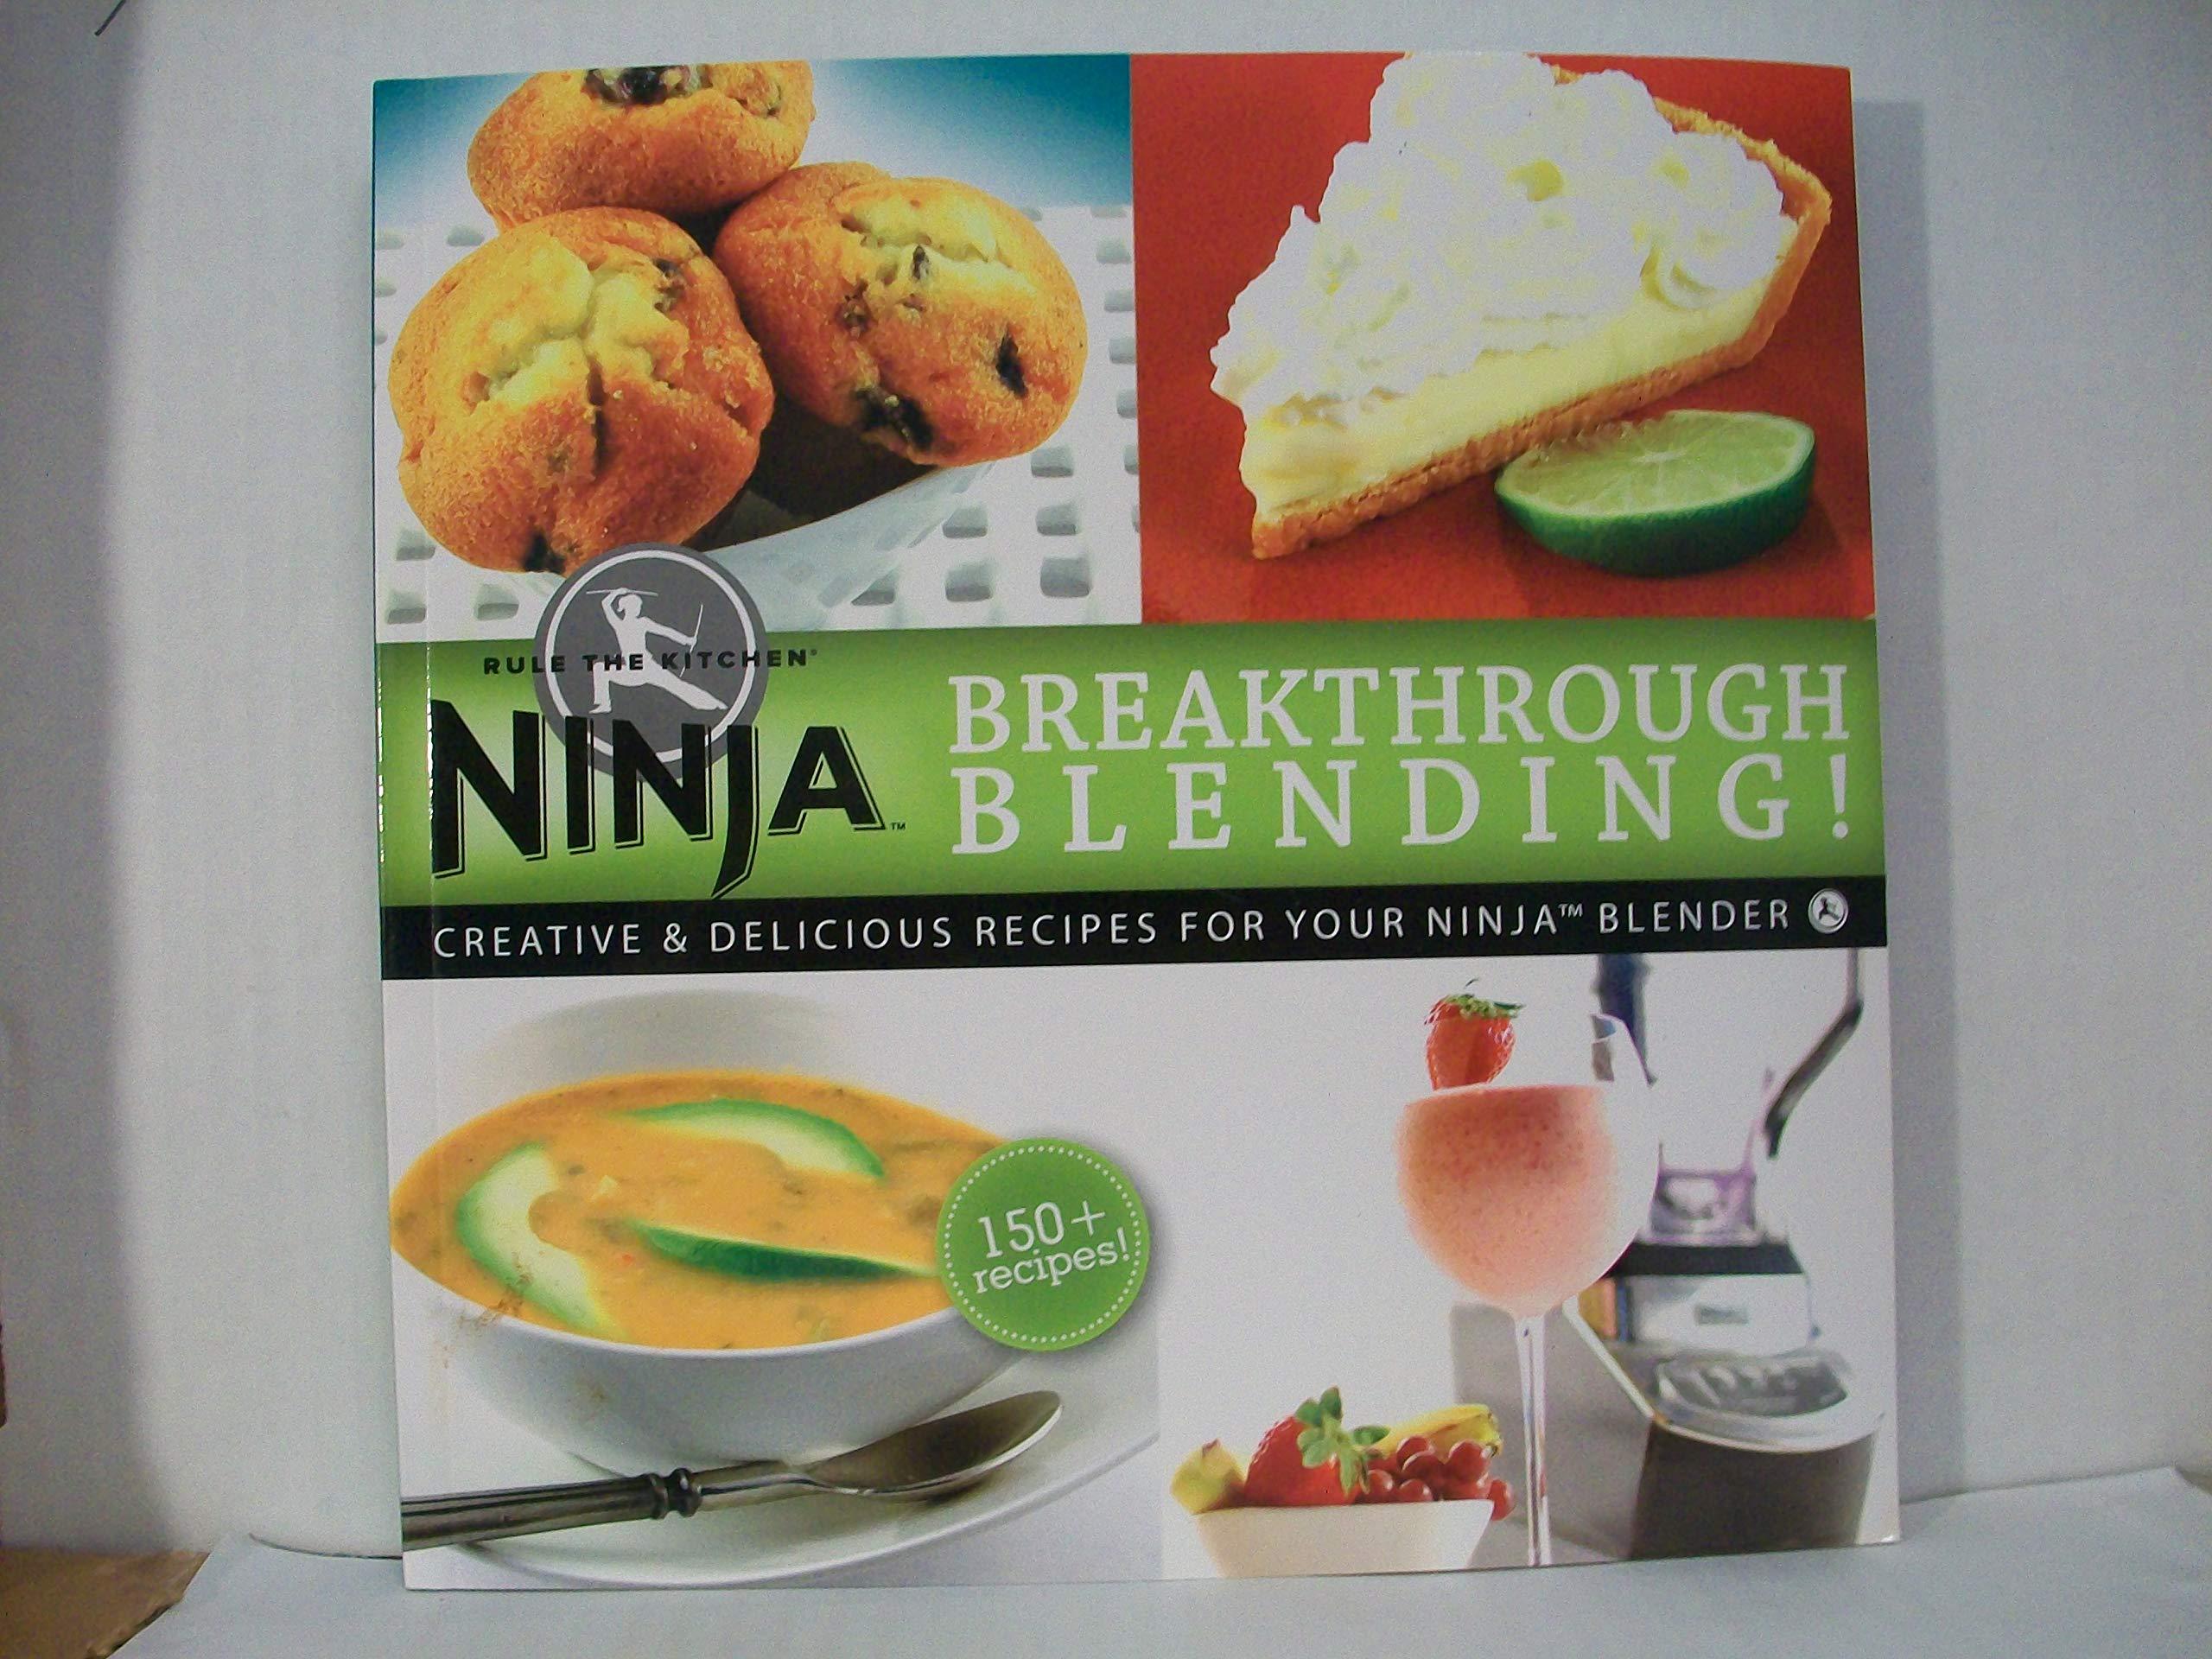 Ninja Rule the Kitchen: Breakthrough Blending: Creative ...